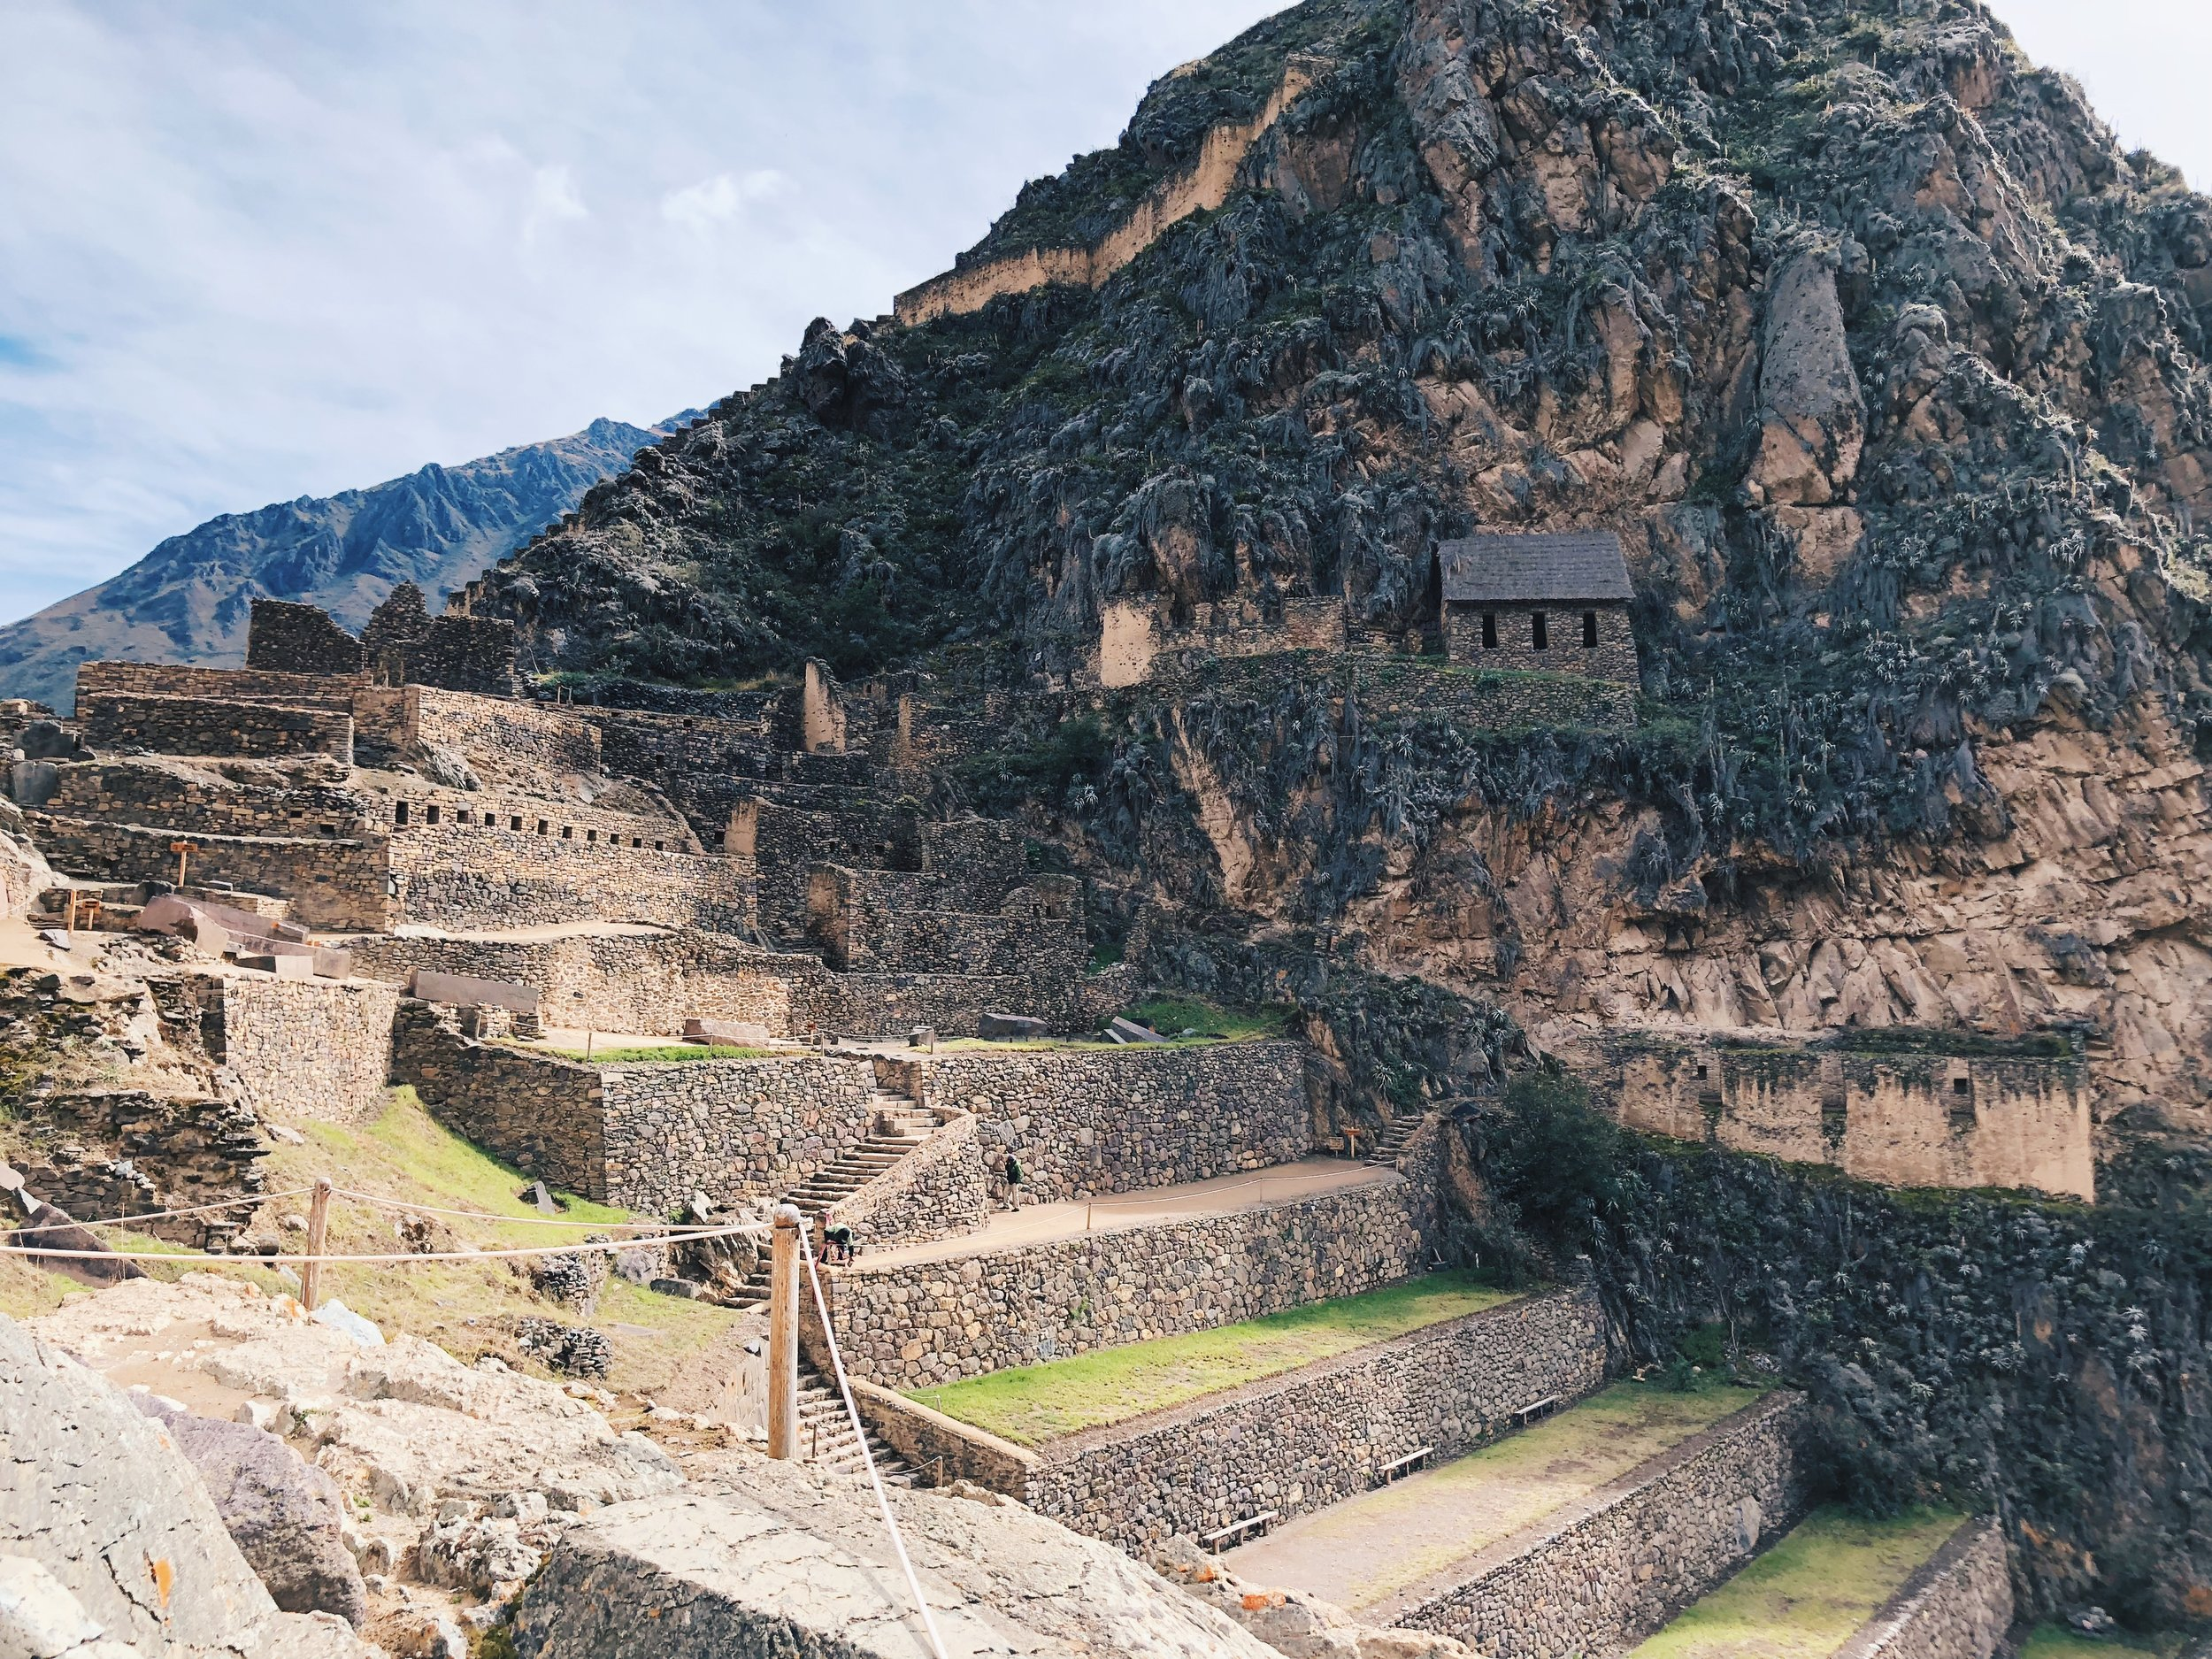 Things to know before traveling to Peru